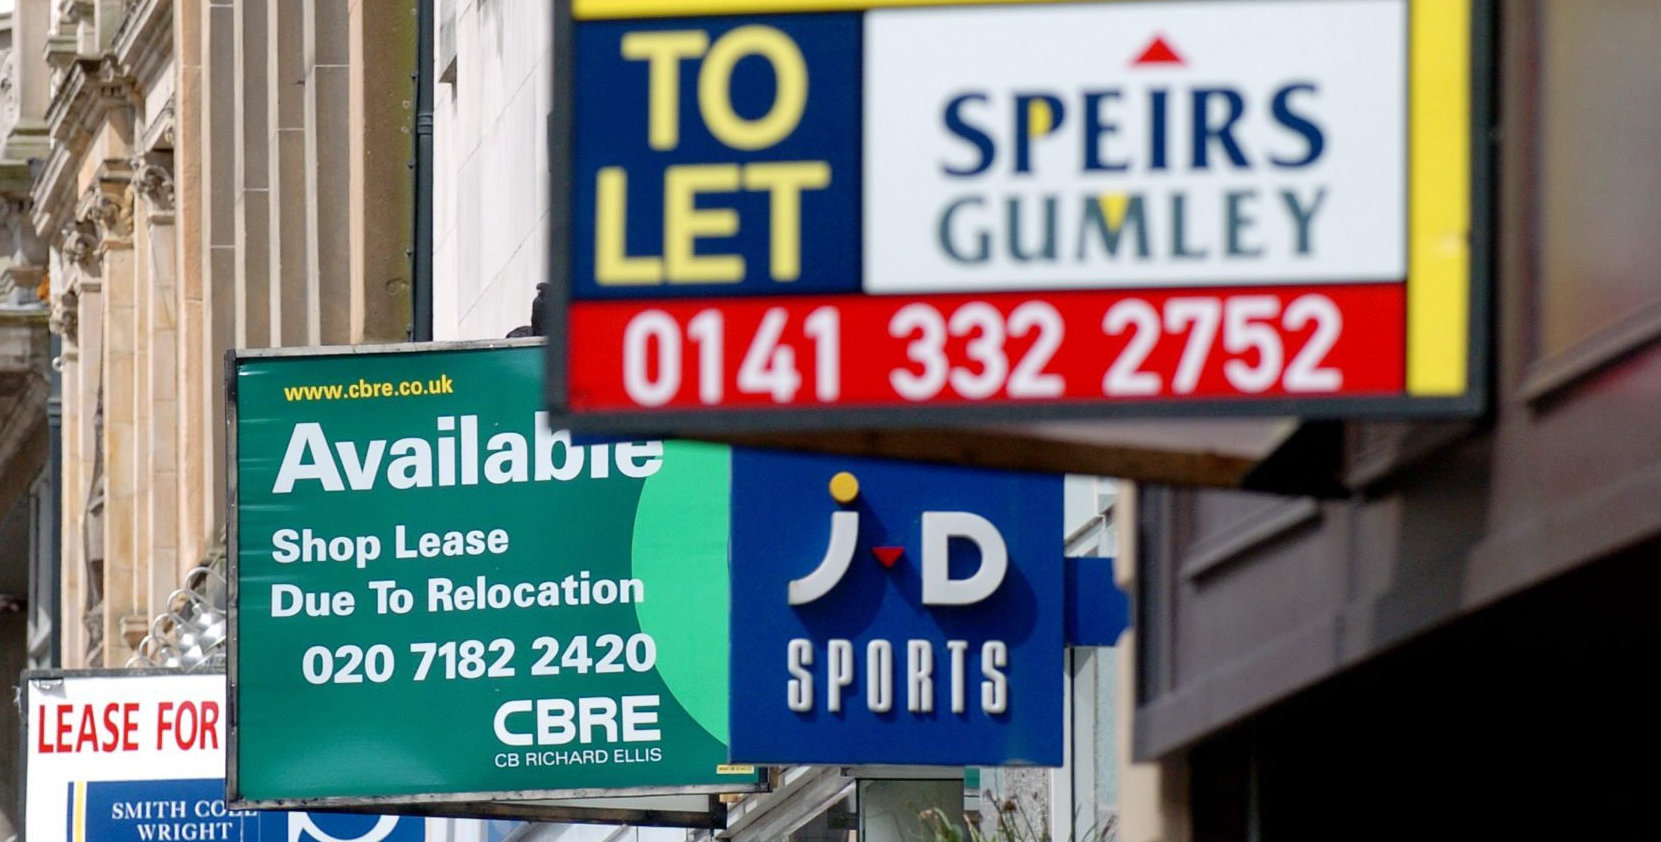 Demand for high street, shopping centre and retail park units is expected to fall as the downturn continues